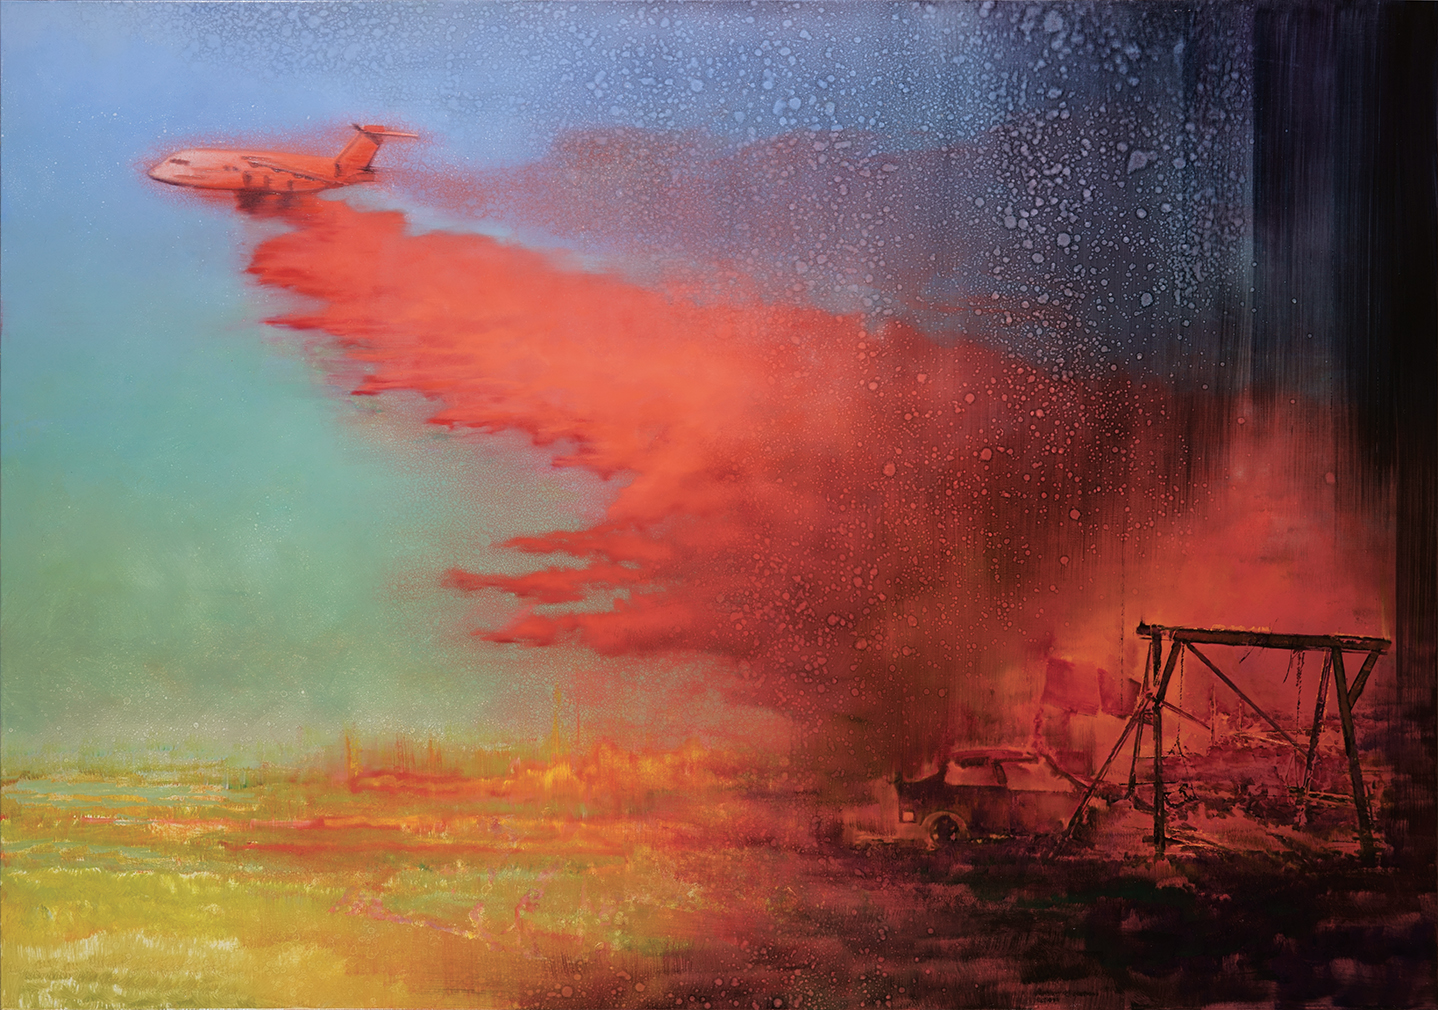 burning playground, oil on canvas. 140x200cm. 2020